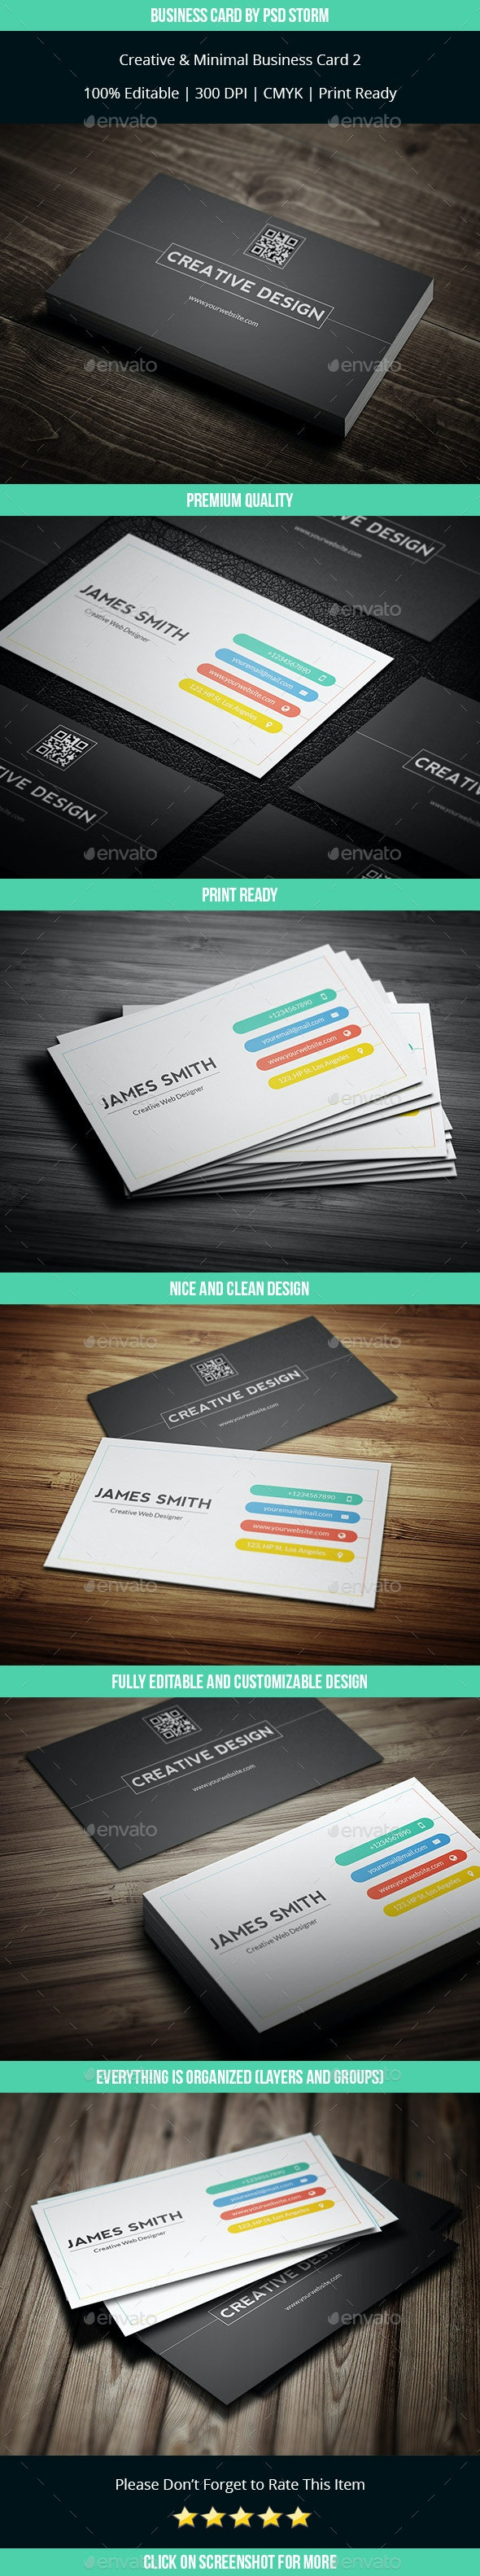 Minim - Clean and Minimal Business Card V3 - Corporate Business Cards